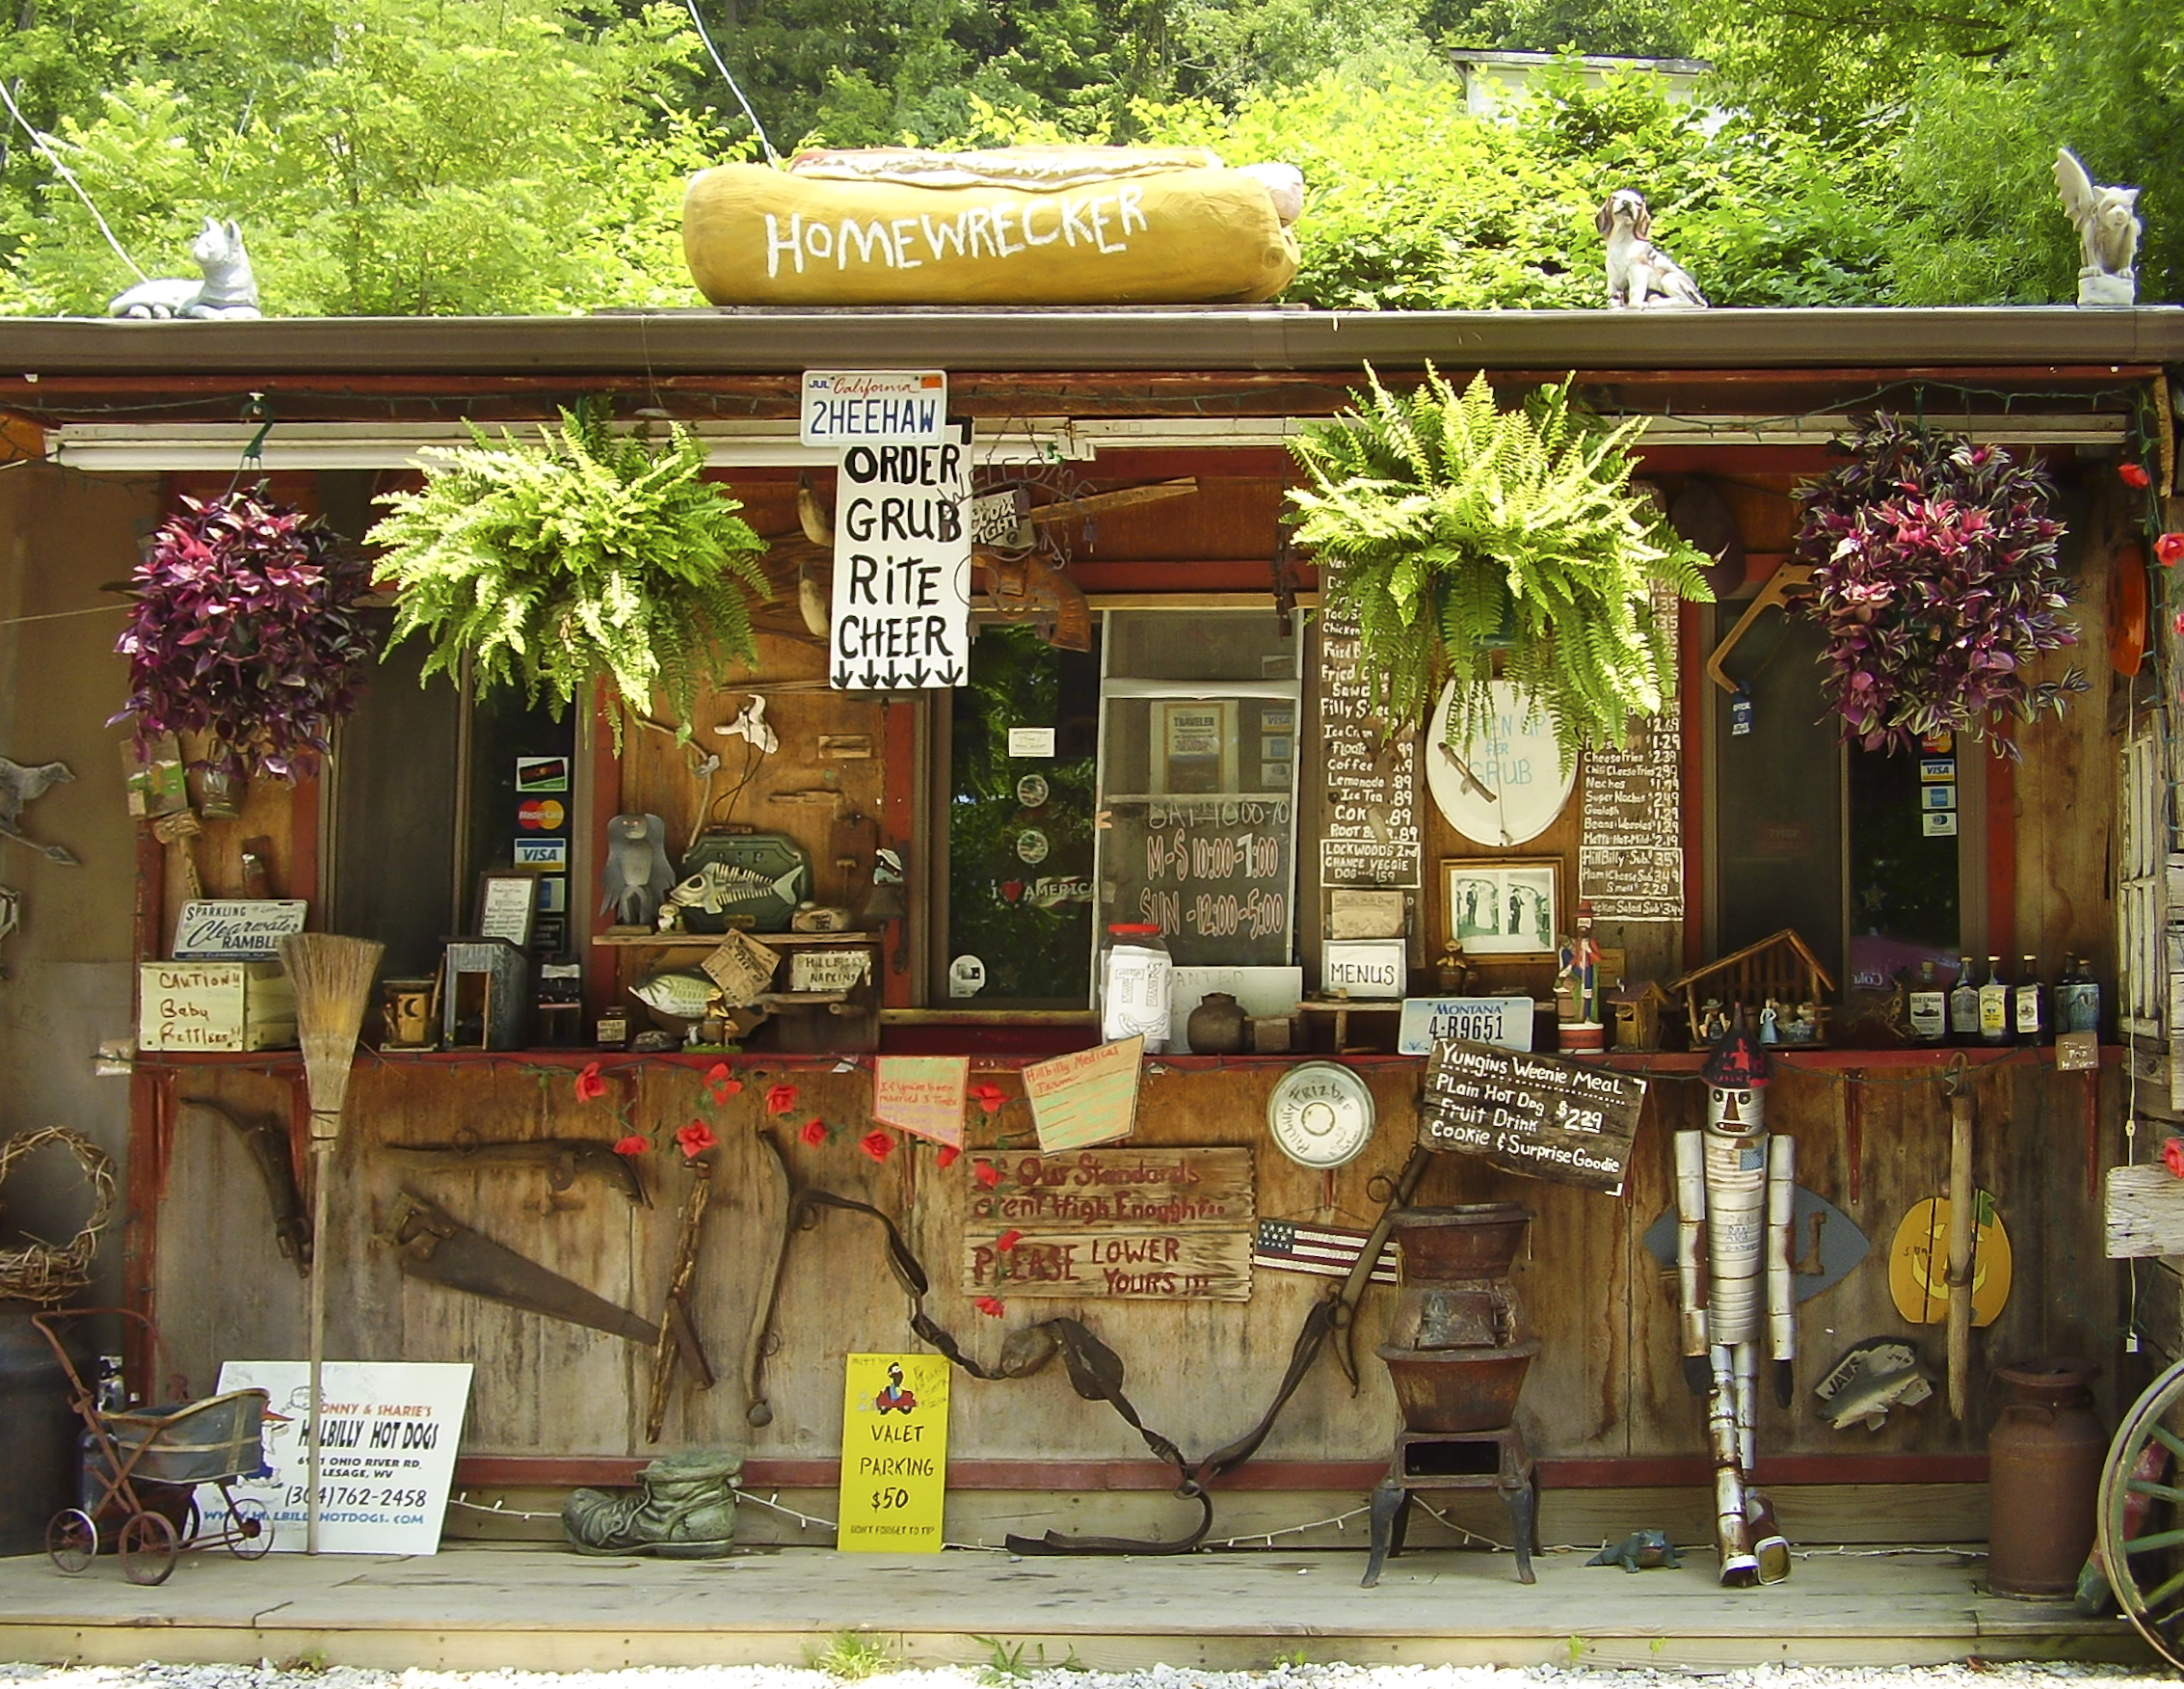 Hillbilly Hot Dogs, a roadside hot dog stand located near Huntington, West Virginia.